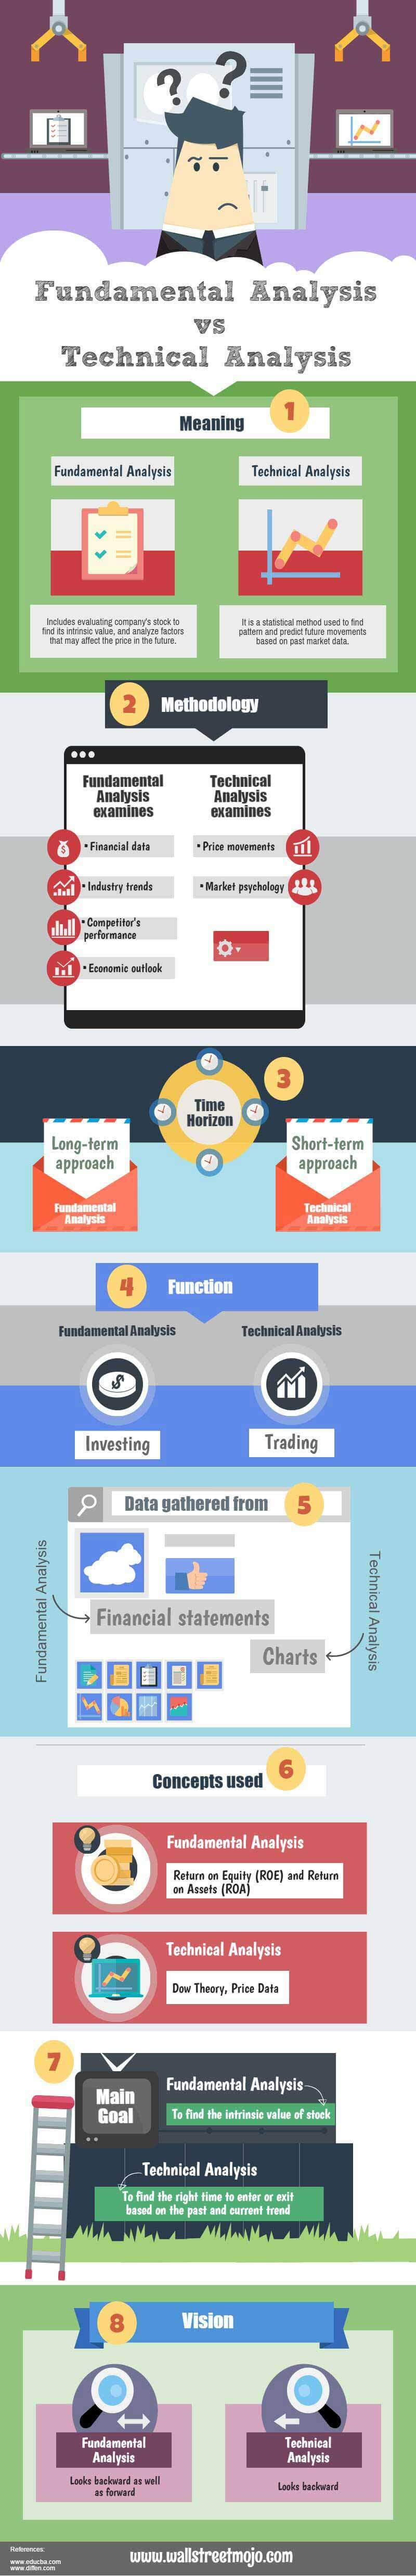 fundamental vs technical analysis thesis Fundamental analysis is a technique for determining the relative strength or weakness of a currency based on economic statistics it complements technical analysis, which uses patterns of.